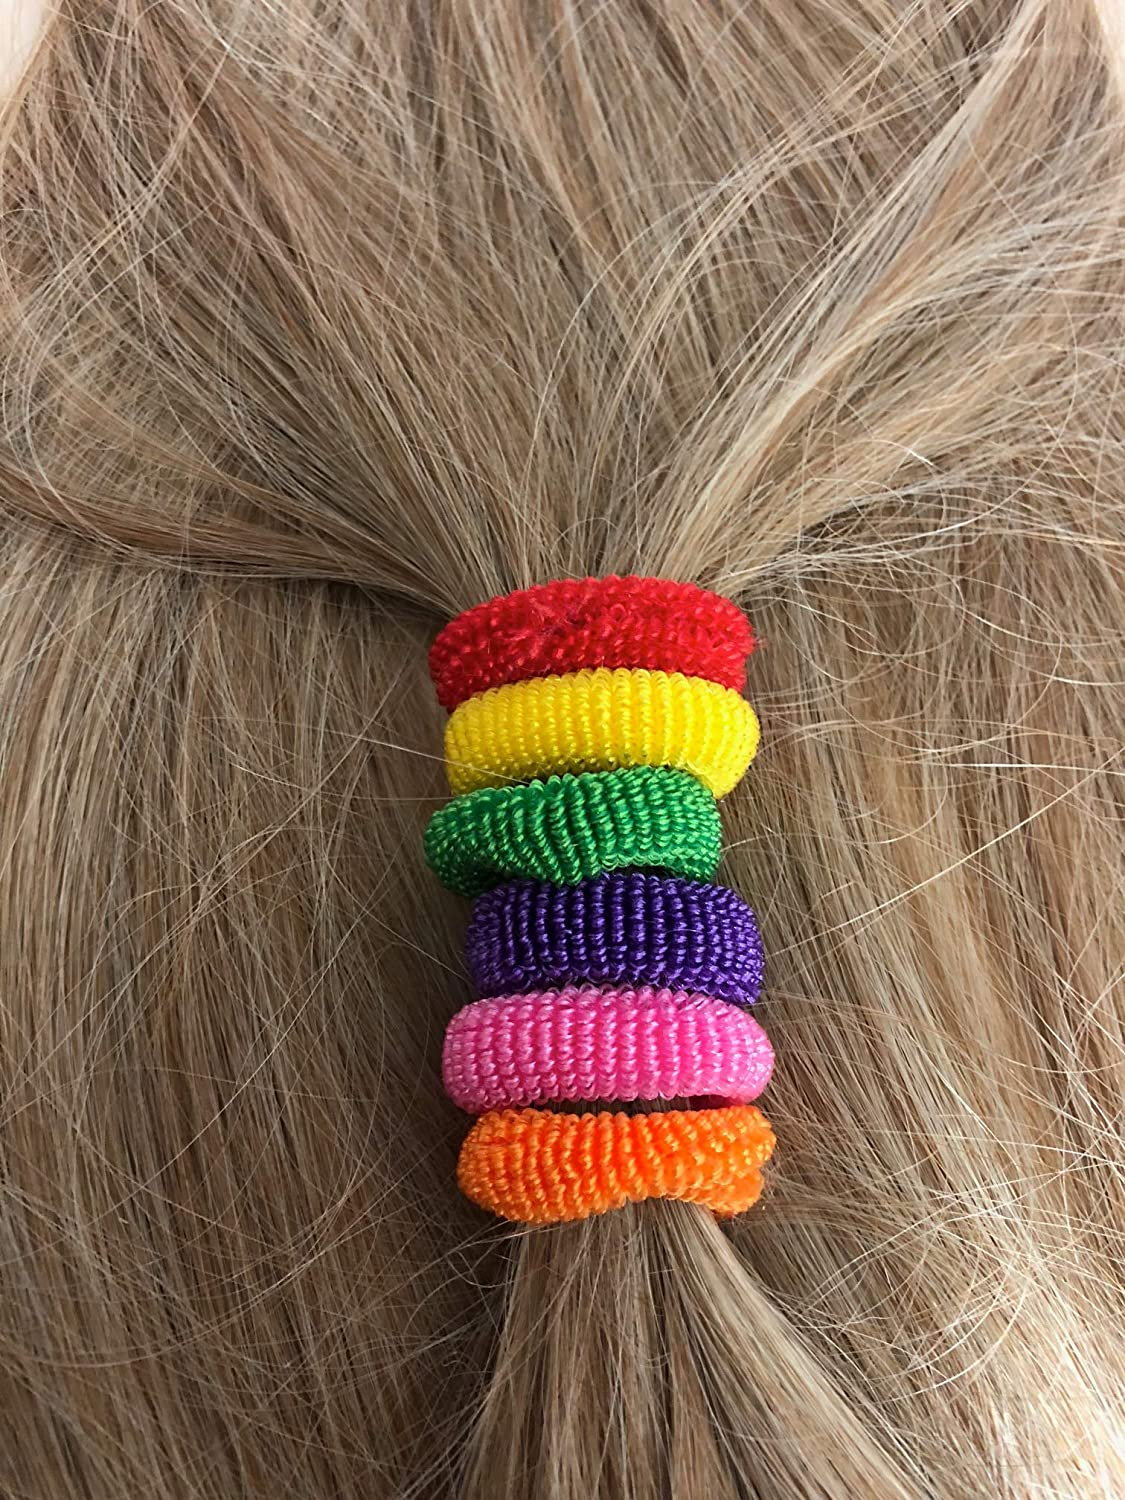 Grids London 50 Hair Bobbles Pack of Girl's Hair Bands Mini Baby Ponytail Elastic Stretchy Hairband Grids London Ltd